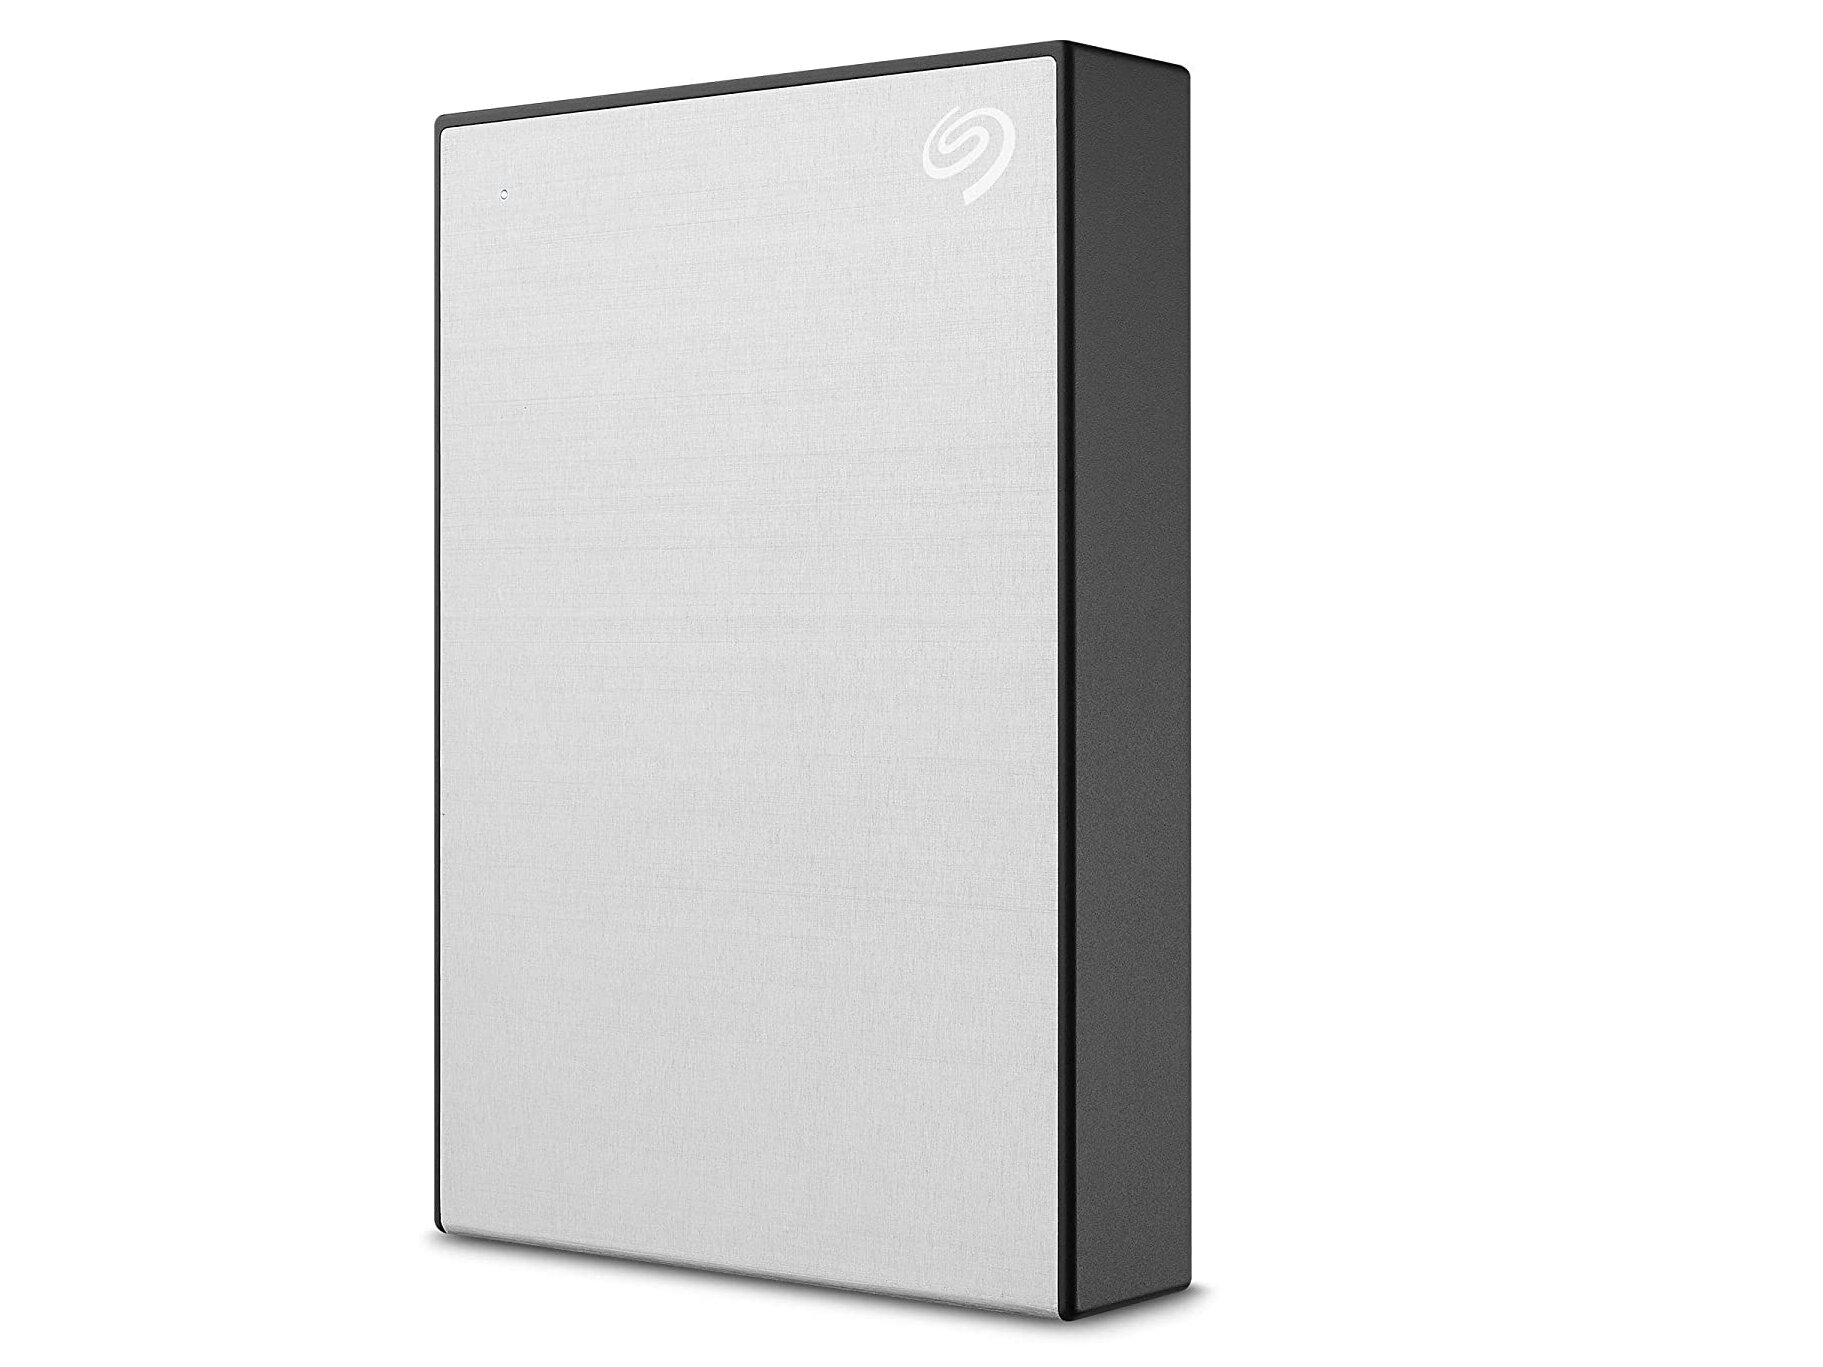 HDD Seagate One Touch 5 To en USB 3.0 : 99,68 euros